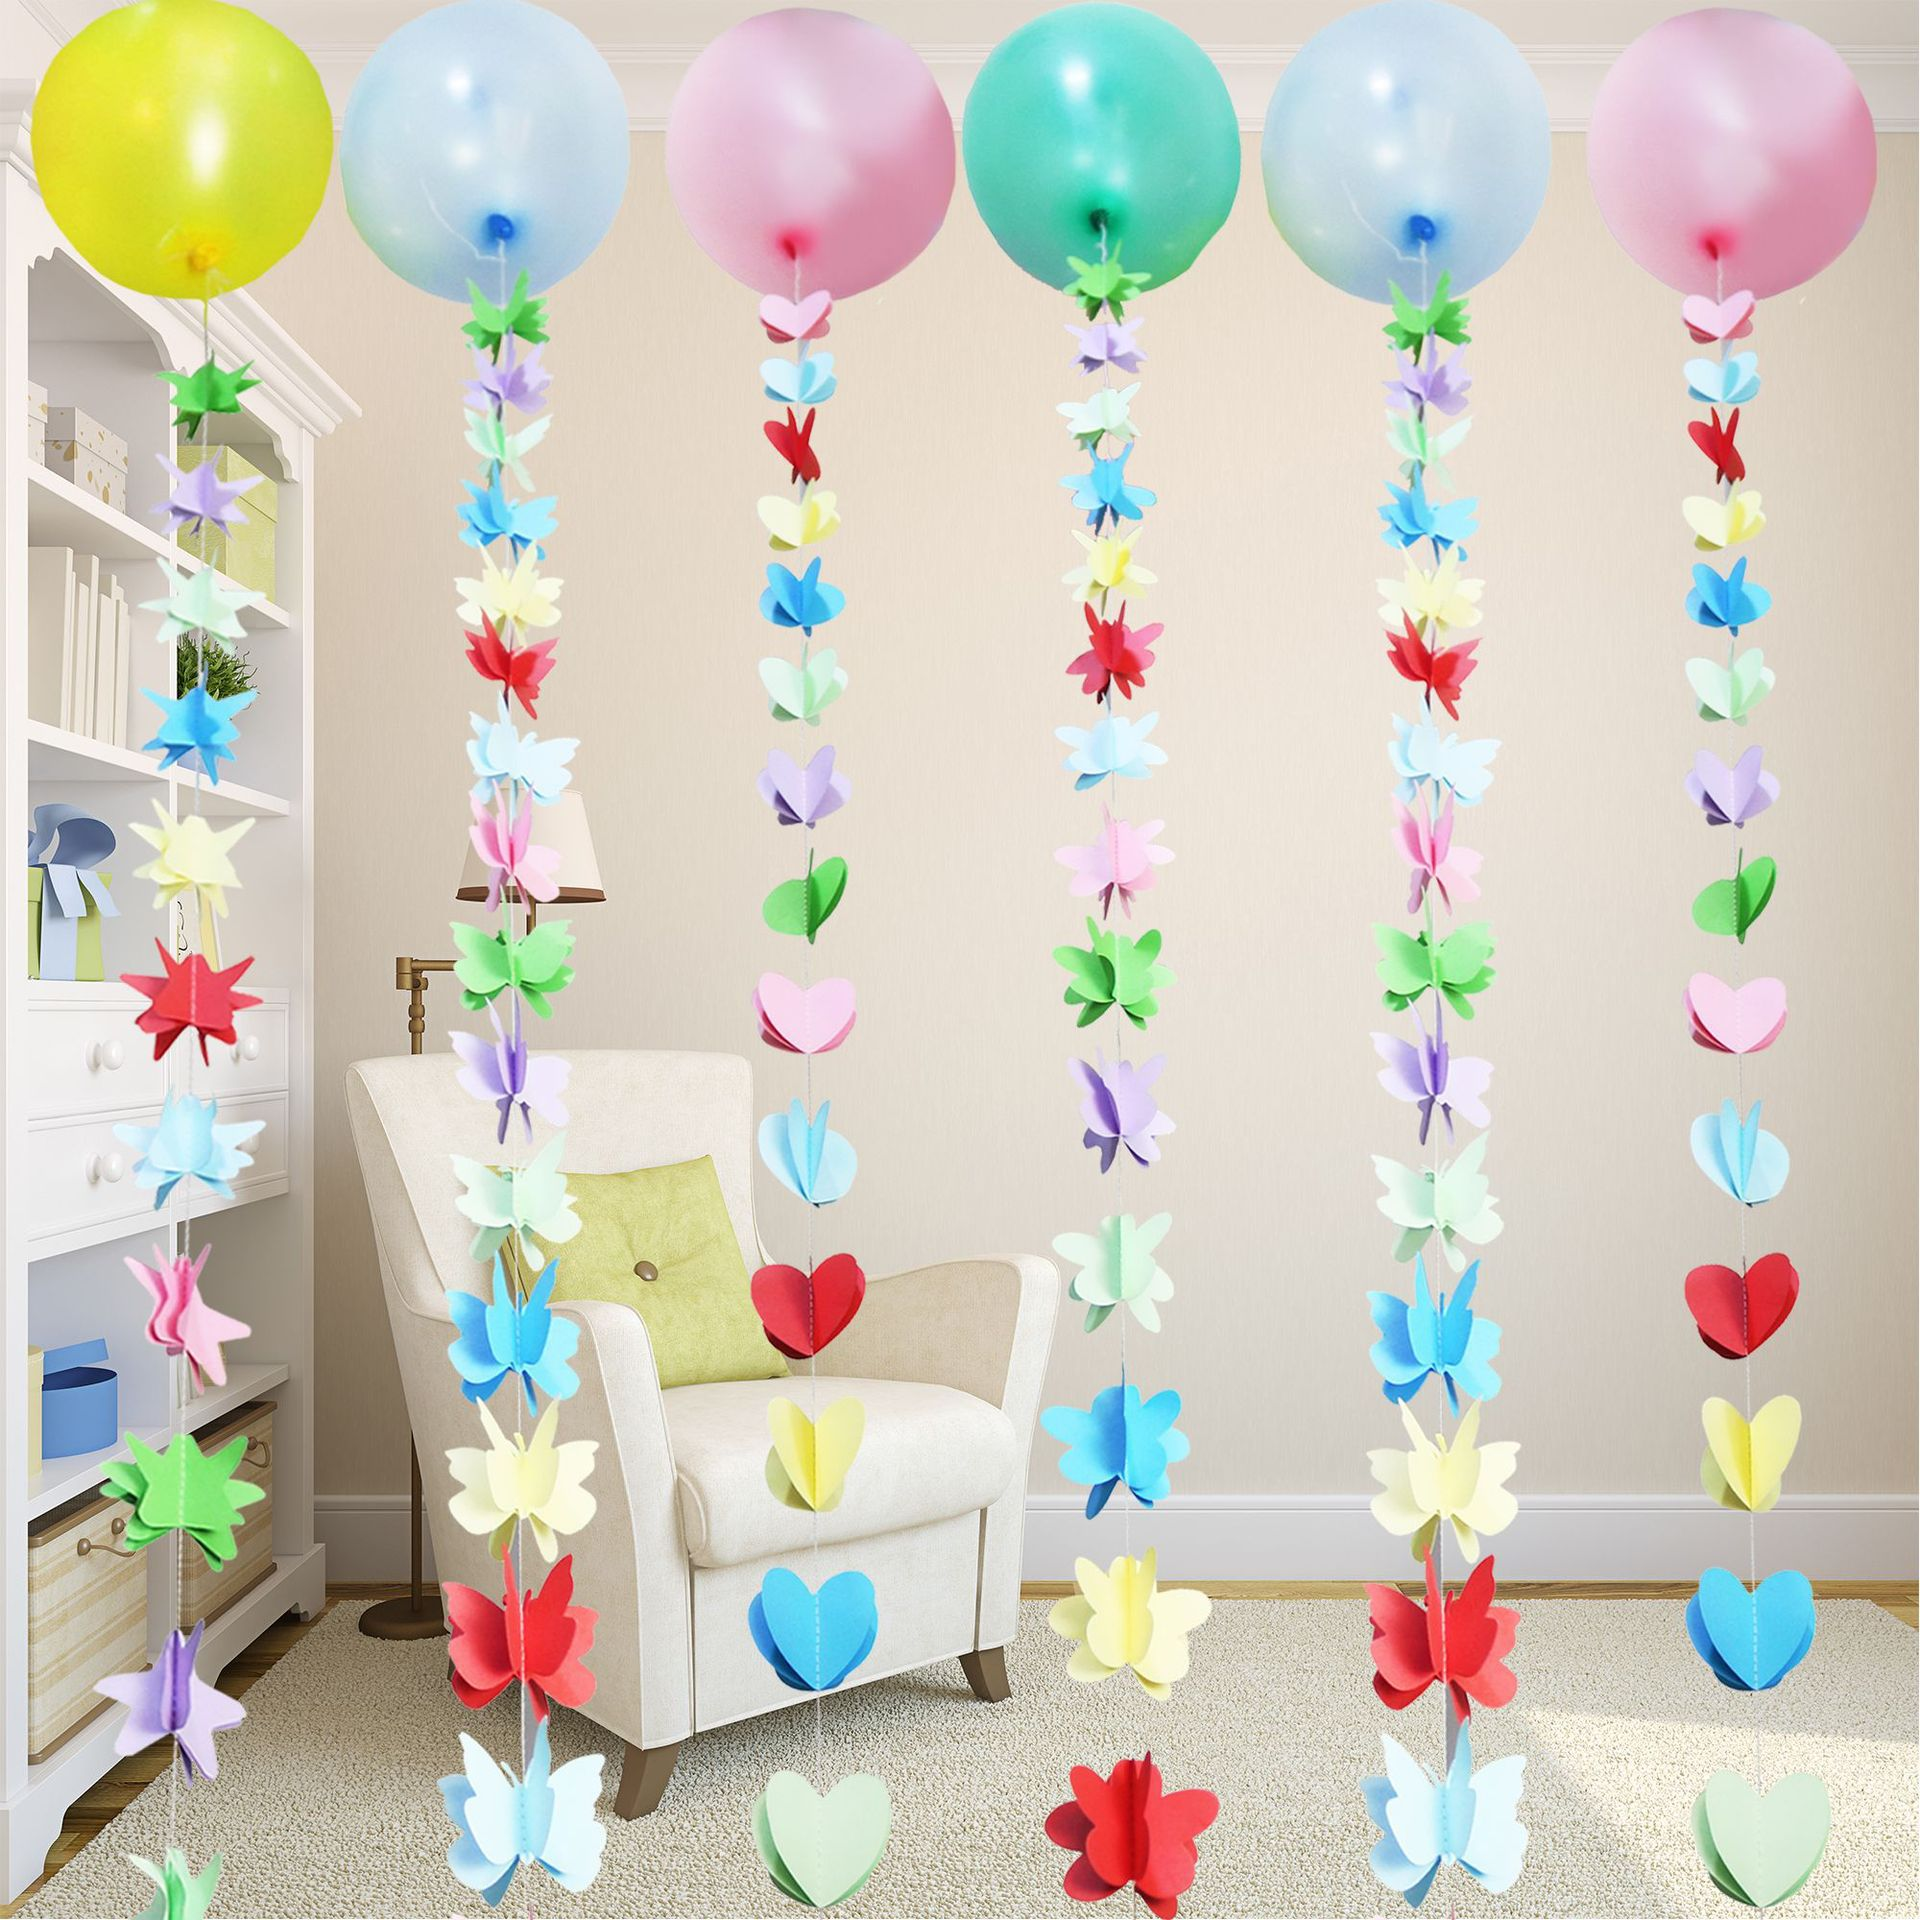 Adorable Fun Colorful Balloon with Decor for Indoor Birthday Parties